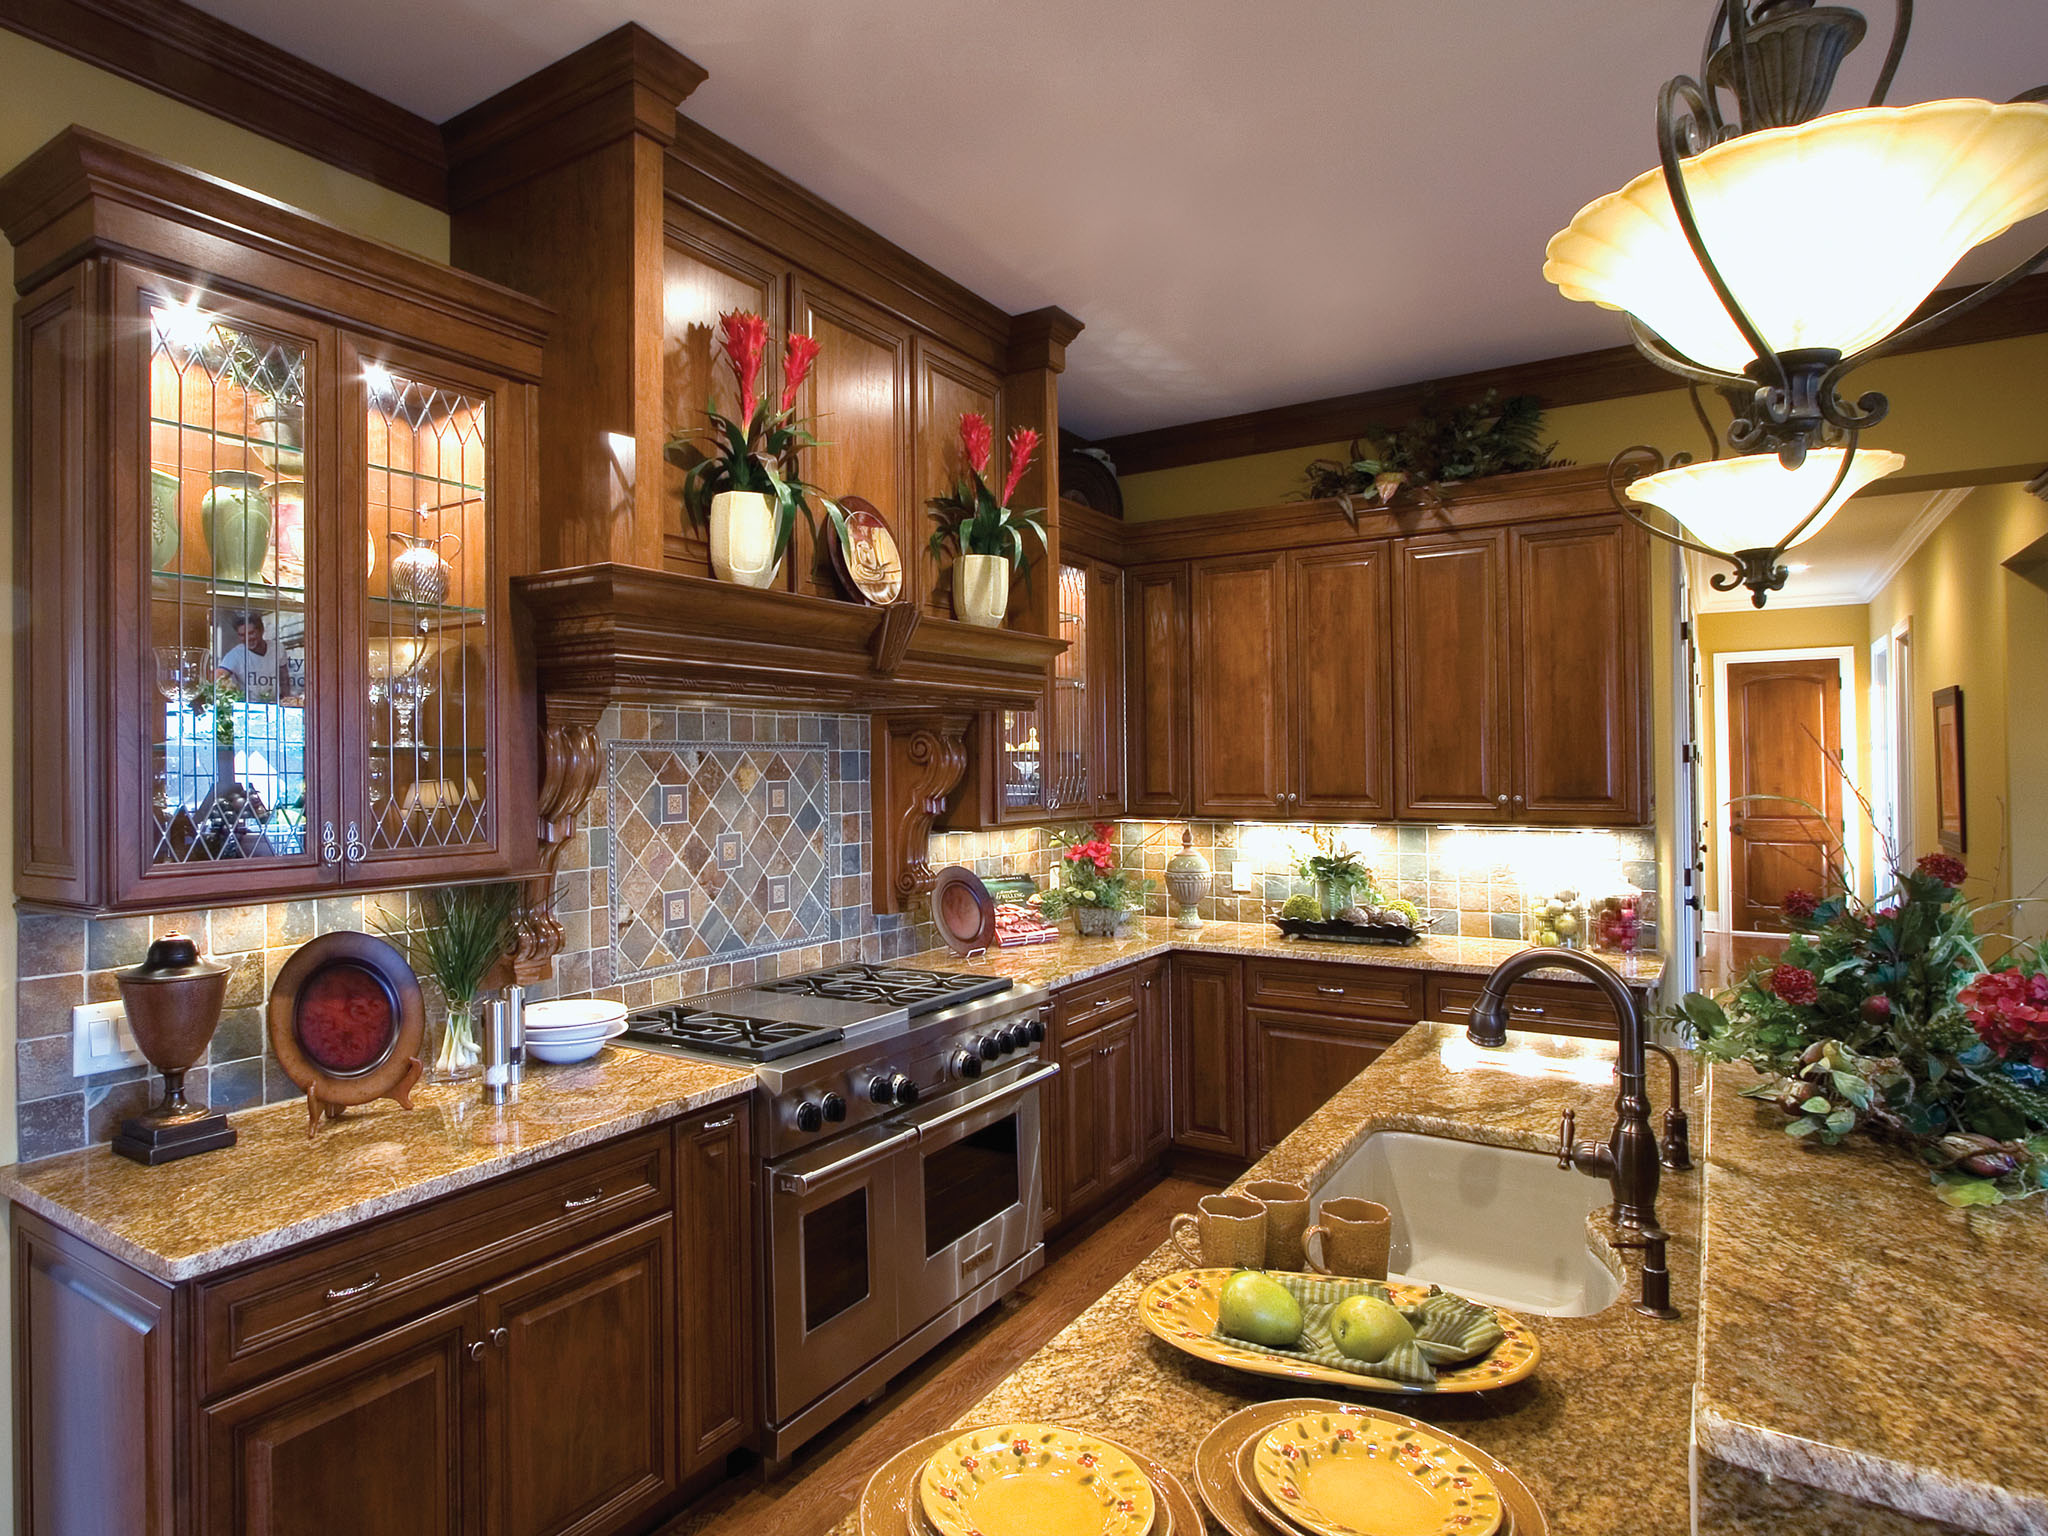 Kitchen Remodeling Kitchen Remodeling Done Right Halo Construction Services